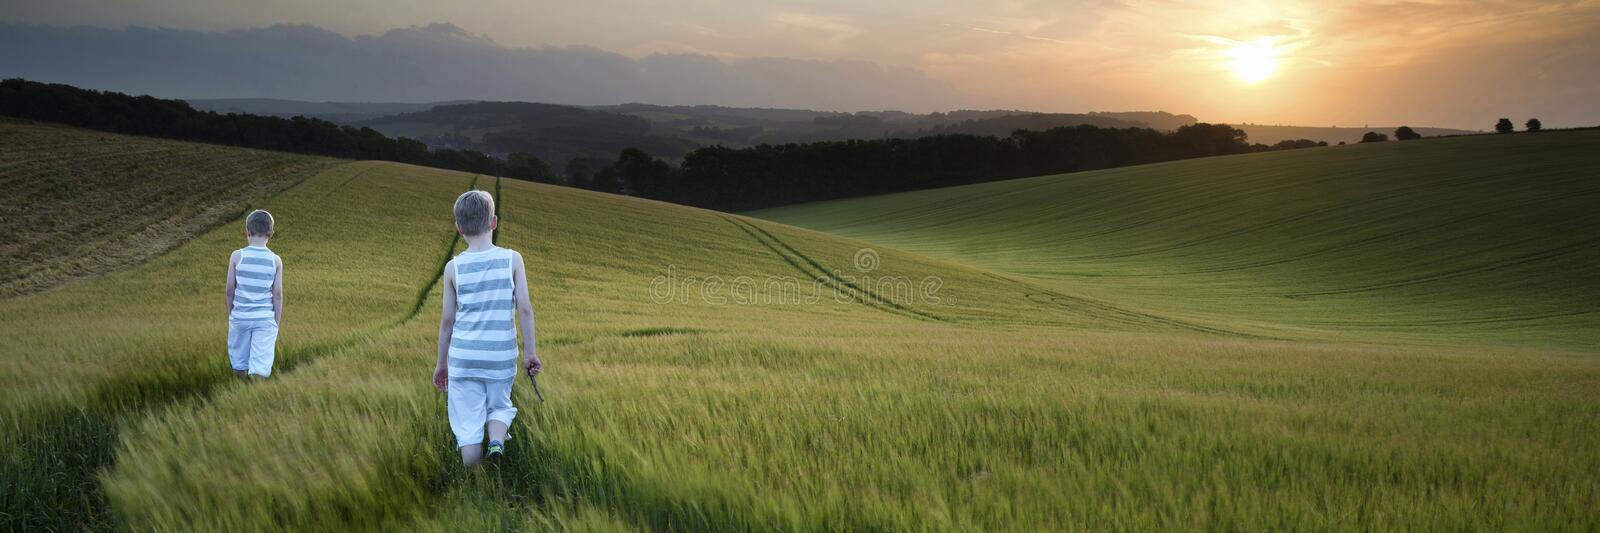 Concept panorama landscape young boys walking through field at s stock photos